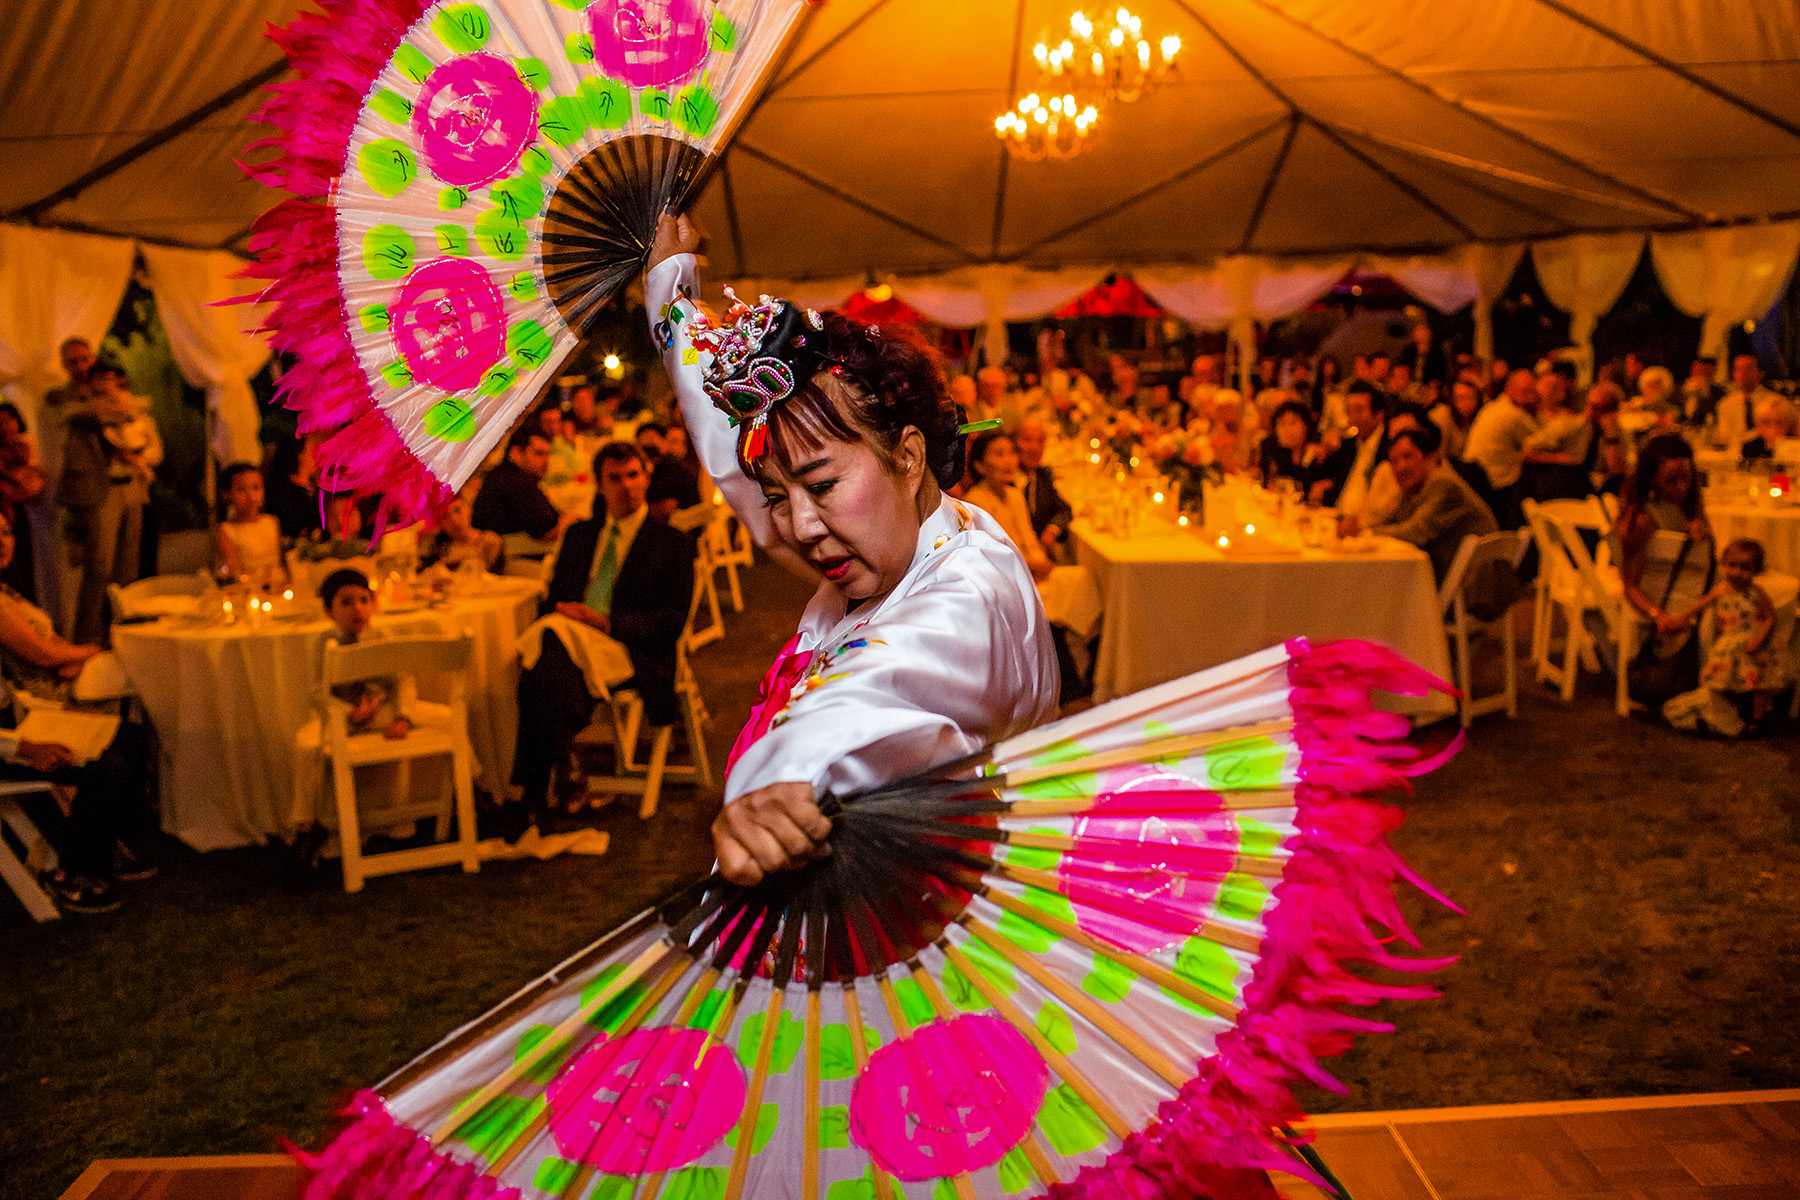 Lee-wedding-photography-La-Posada-Santa-Fe-New-Mexico-1104